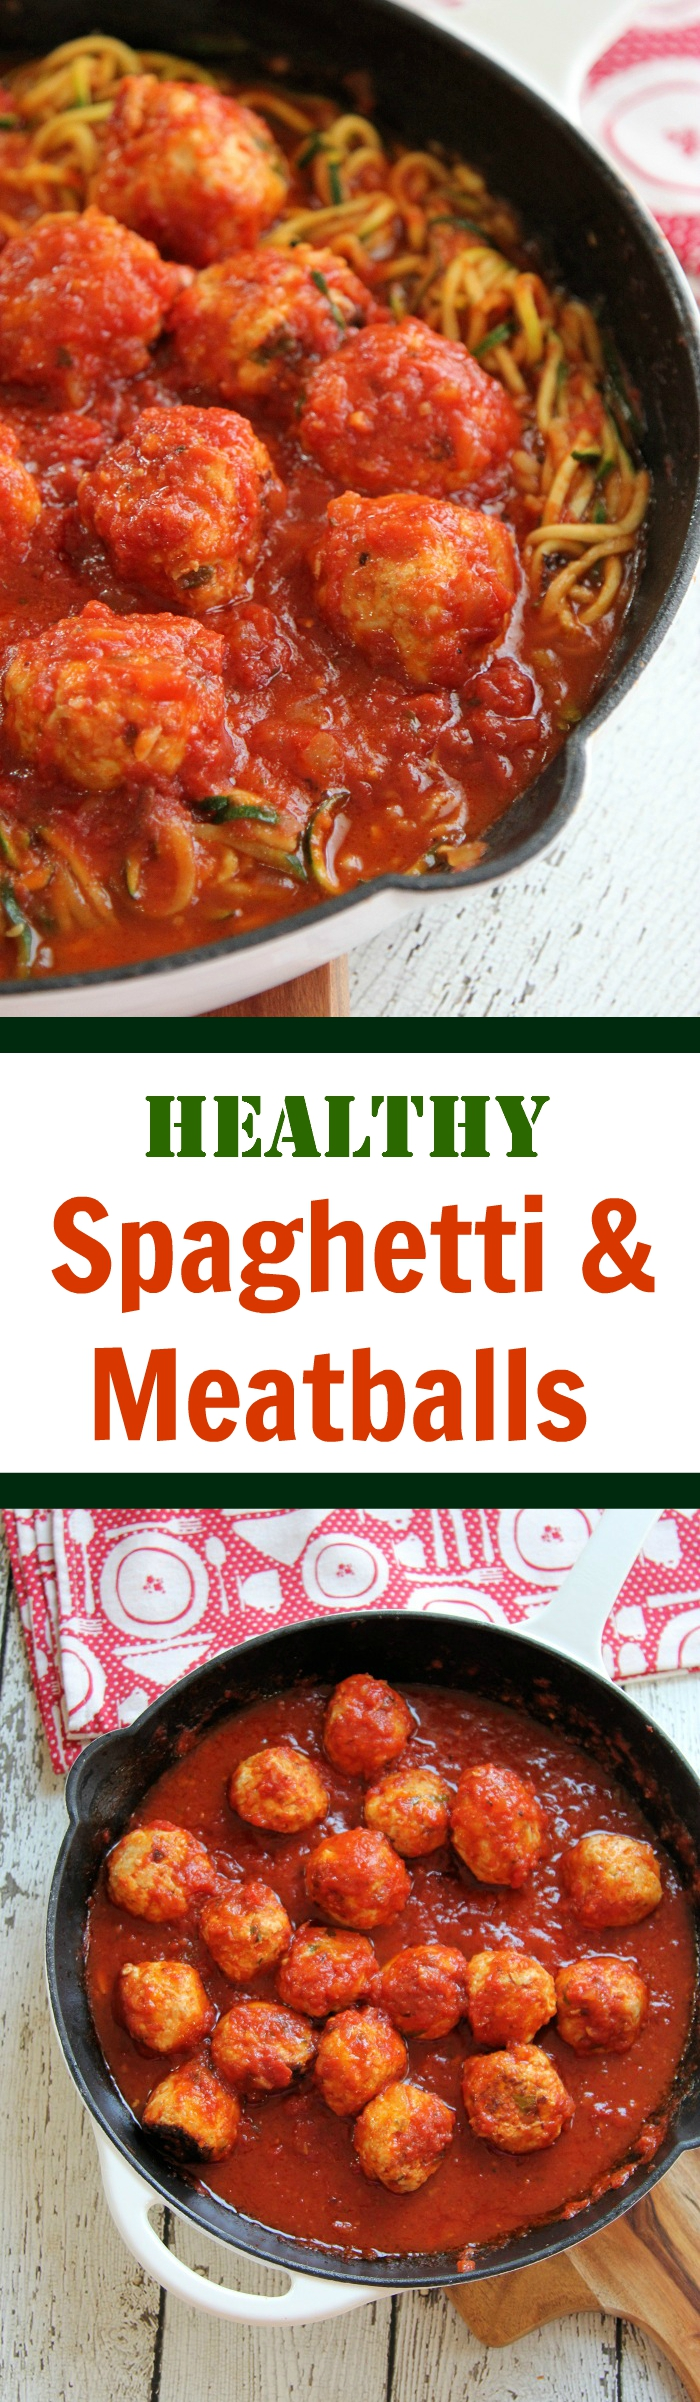 Healthy Spaghetti & Meatballs: gluten-free, grain-free, low-carb, low-cal, low-fat